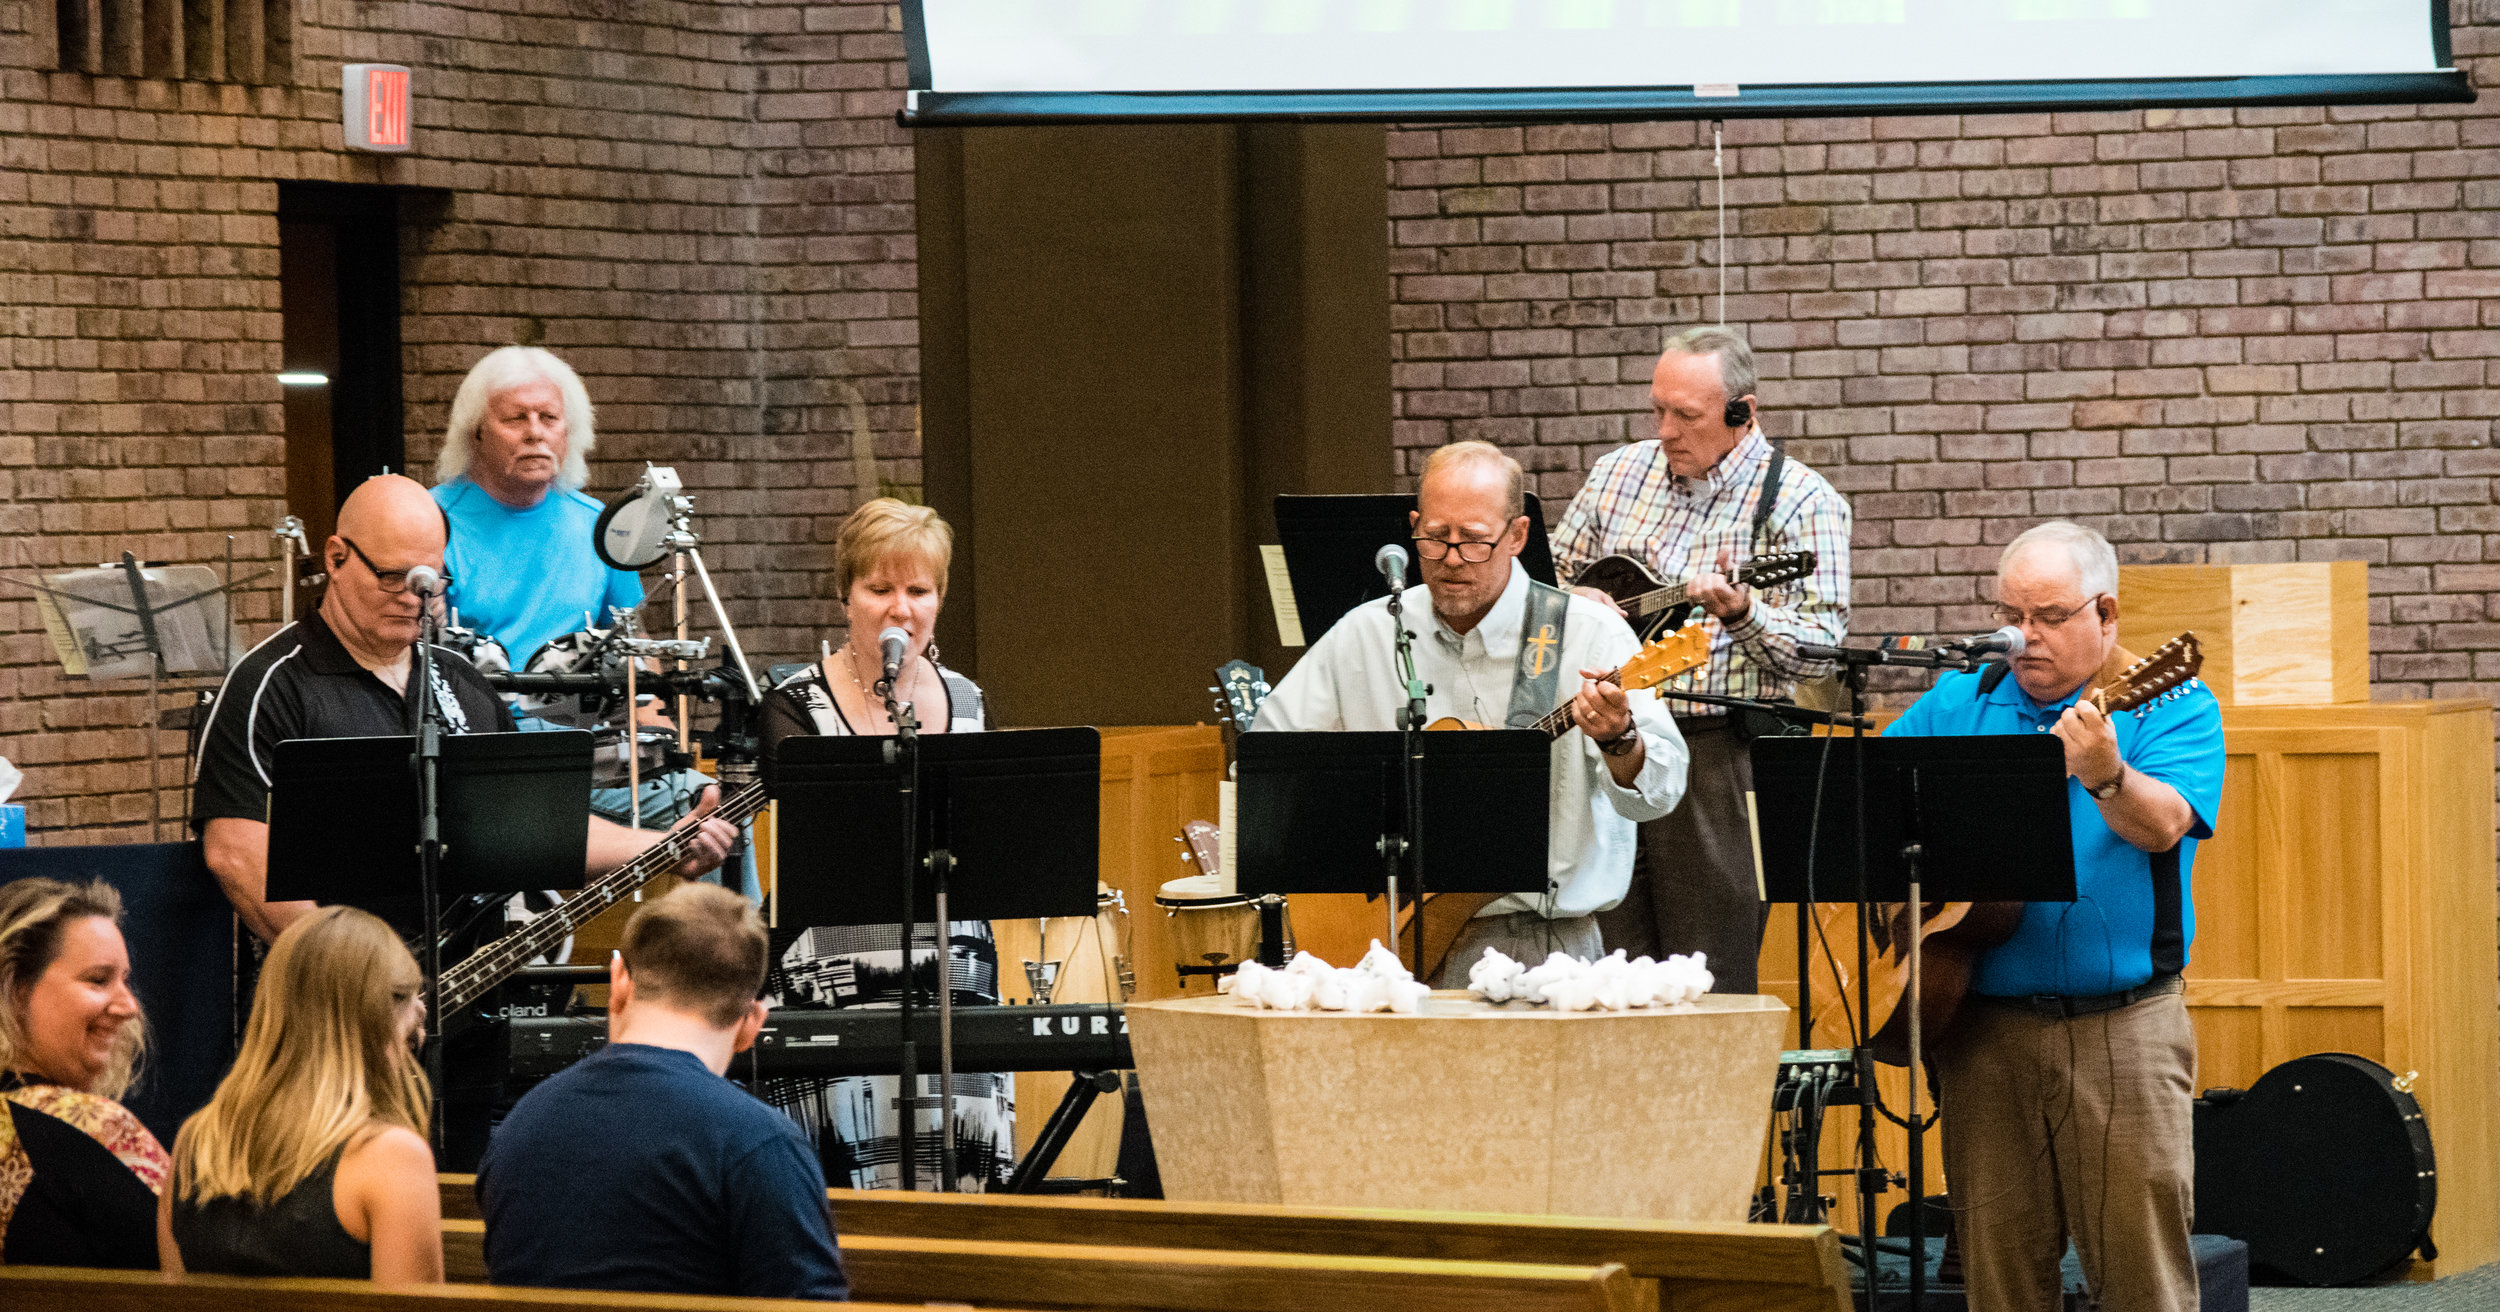 Contemporary Worship - A less formal experience with a high-energy band, which rests on a foundation of Lutheran theology. At 10:45, on 2nd, 4th and 5th Sundays, and every Wednesday.